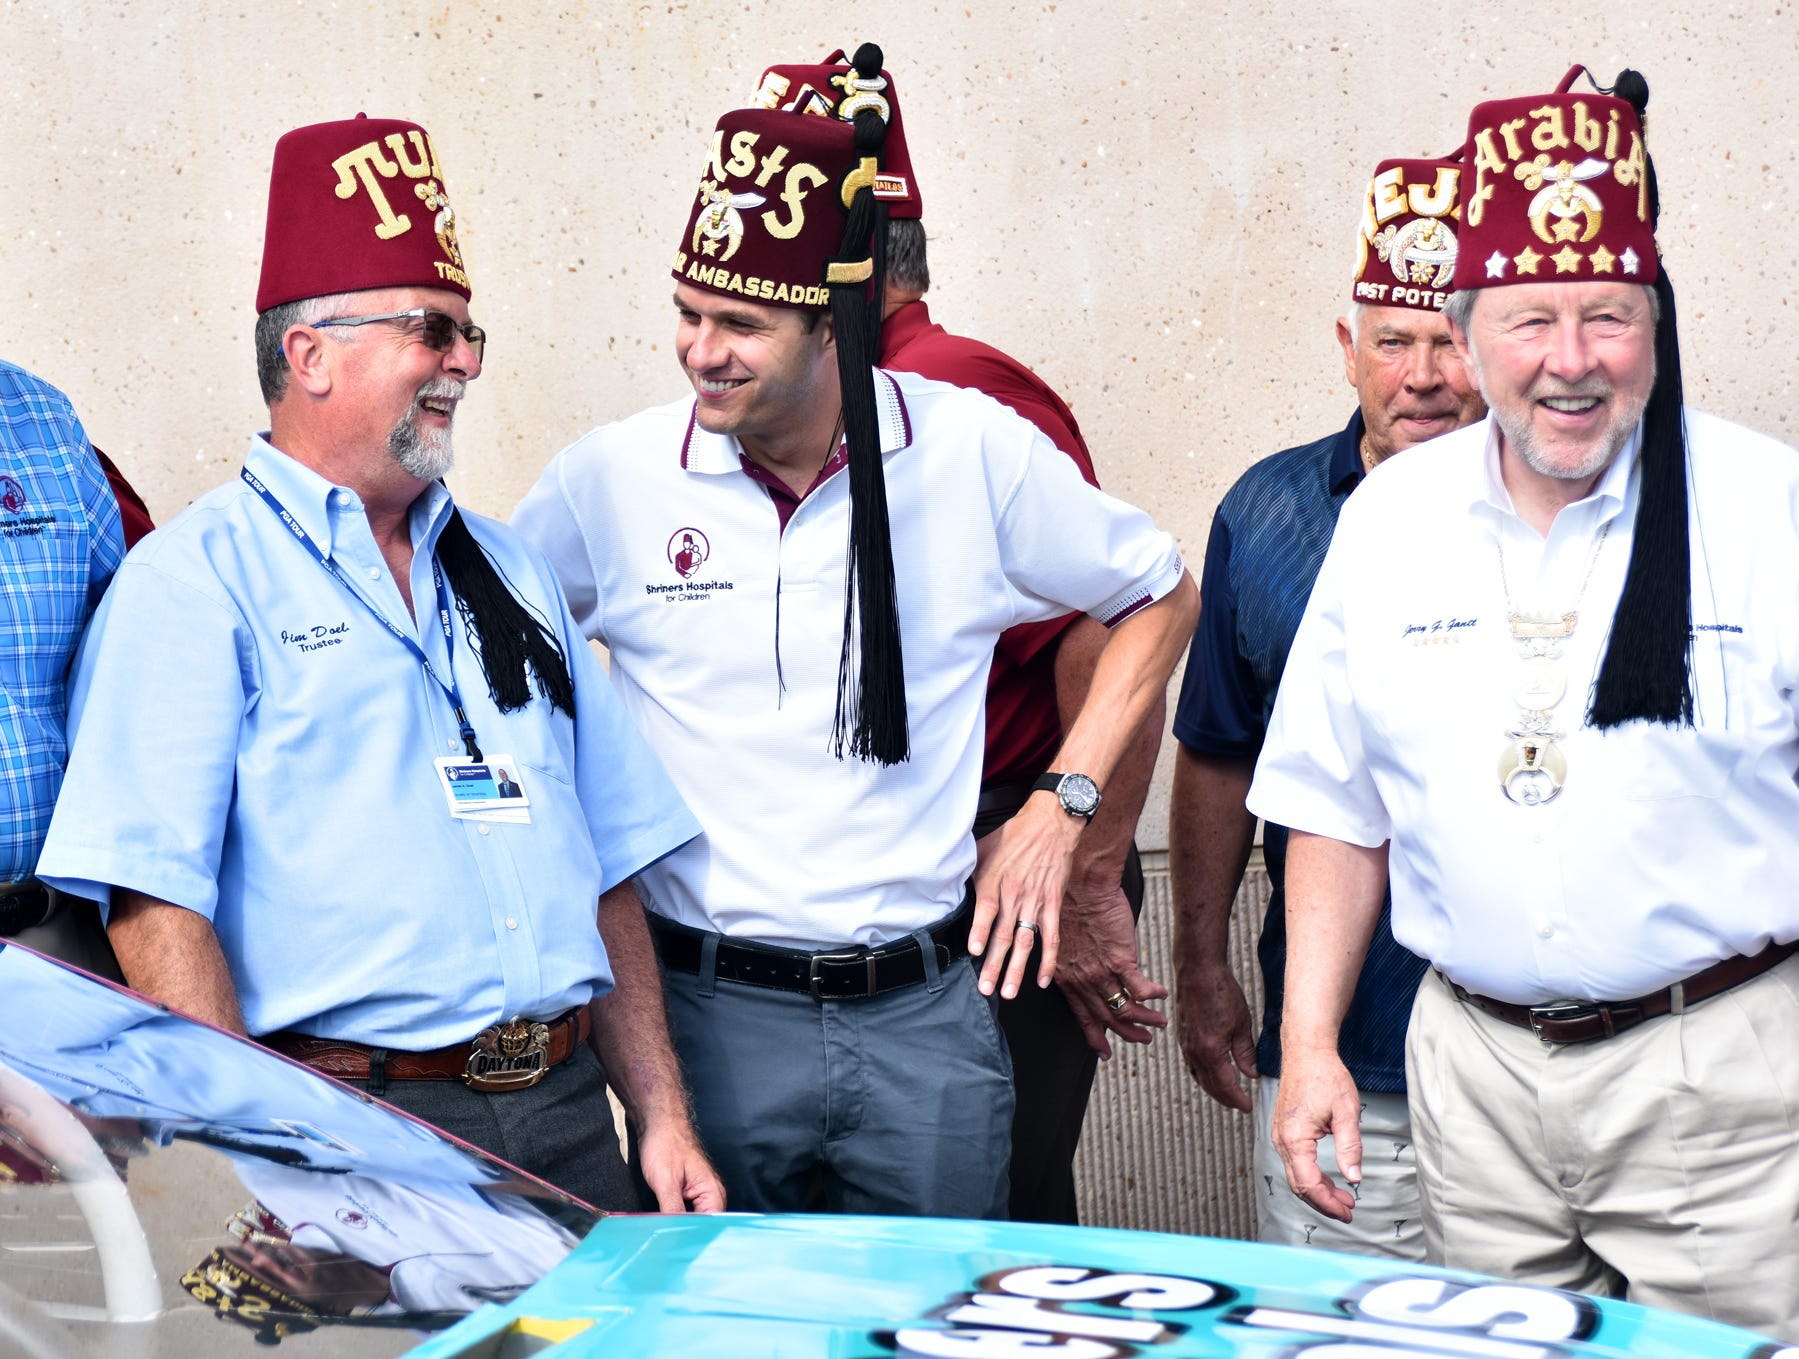 NASCAR driver  and Shriner David Ragan talks with local shriners at the Shriners Hospital for Children in Greenville on August 15, 2018.